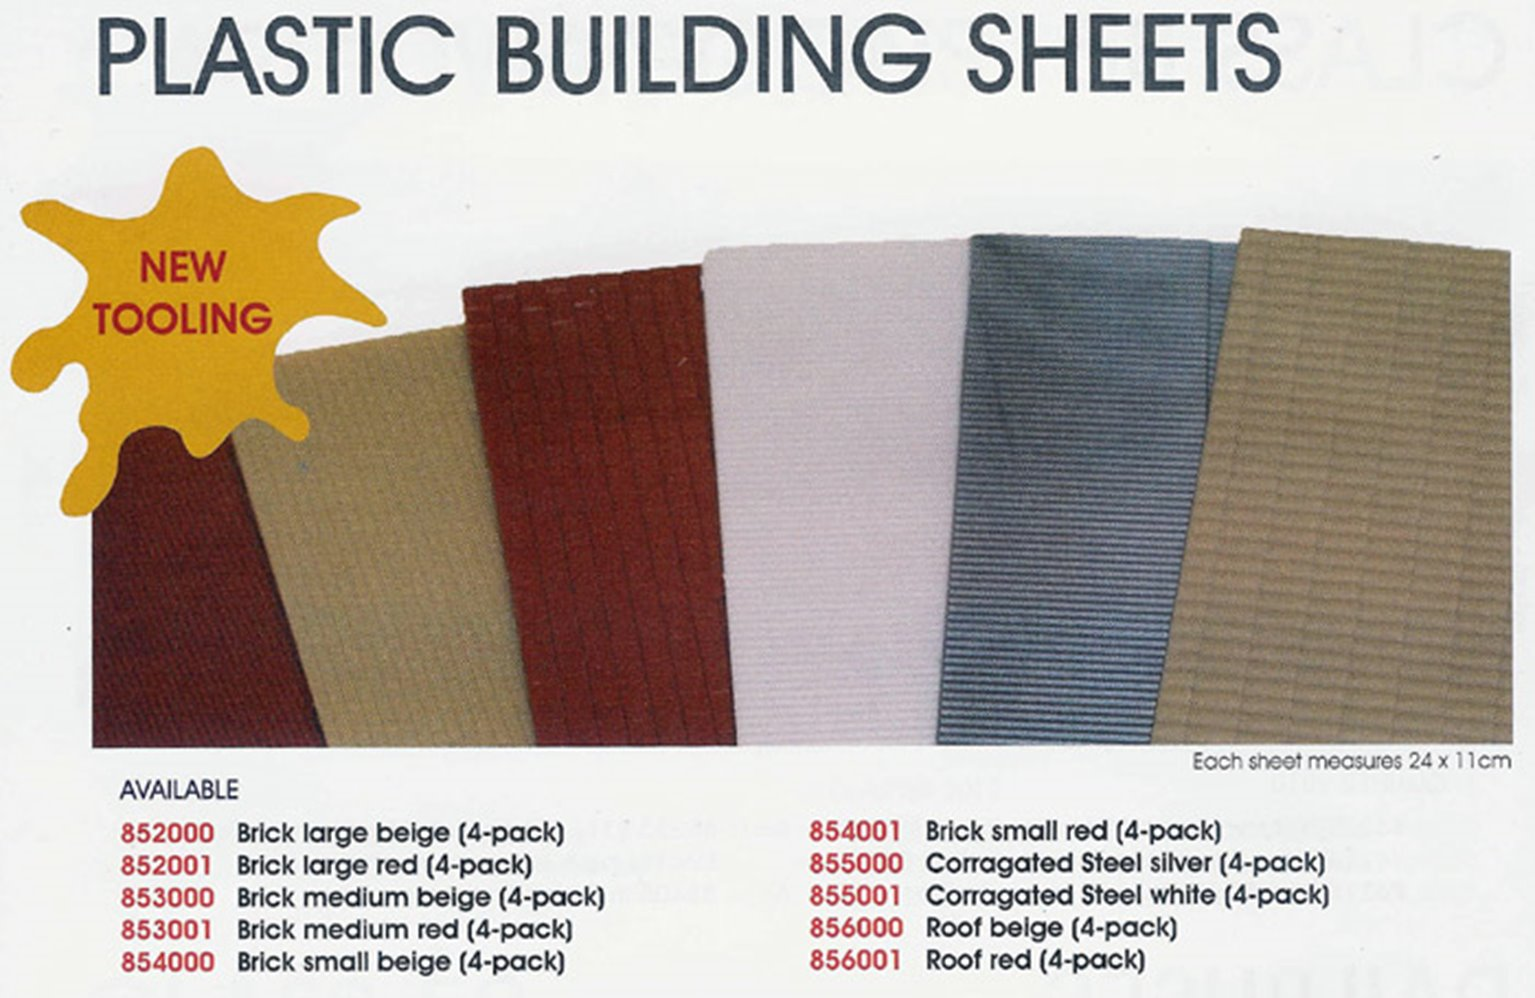 Plastic building sheets - 4 Pack (brick small beige)